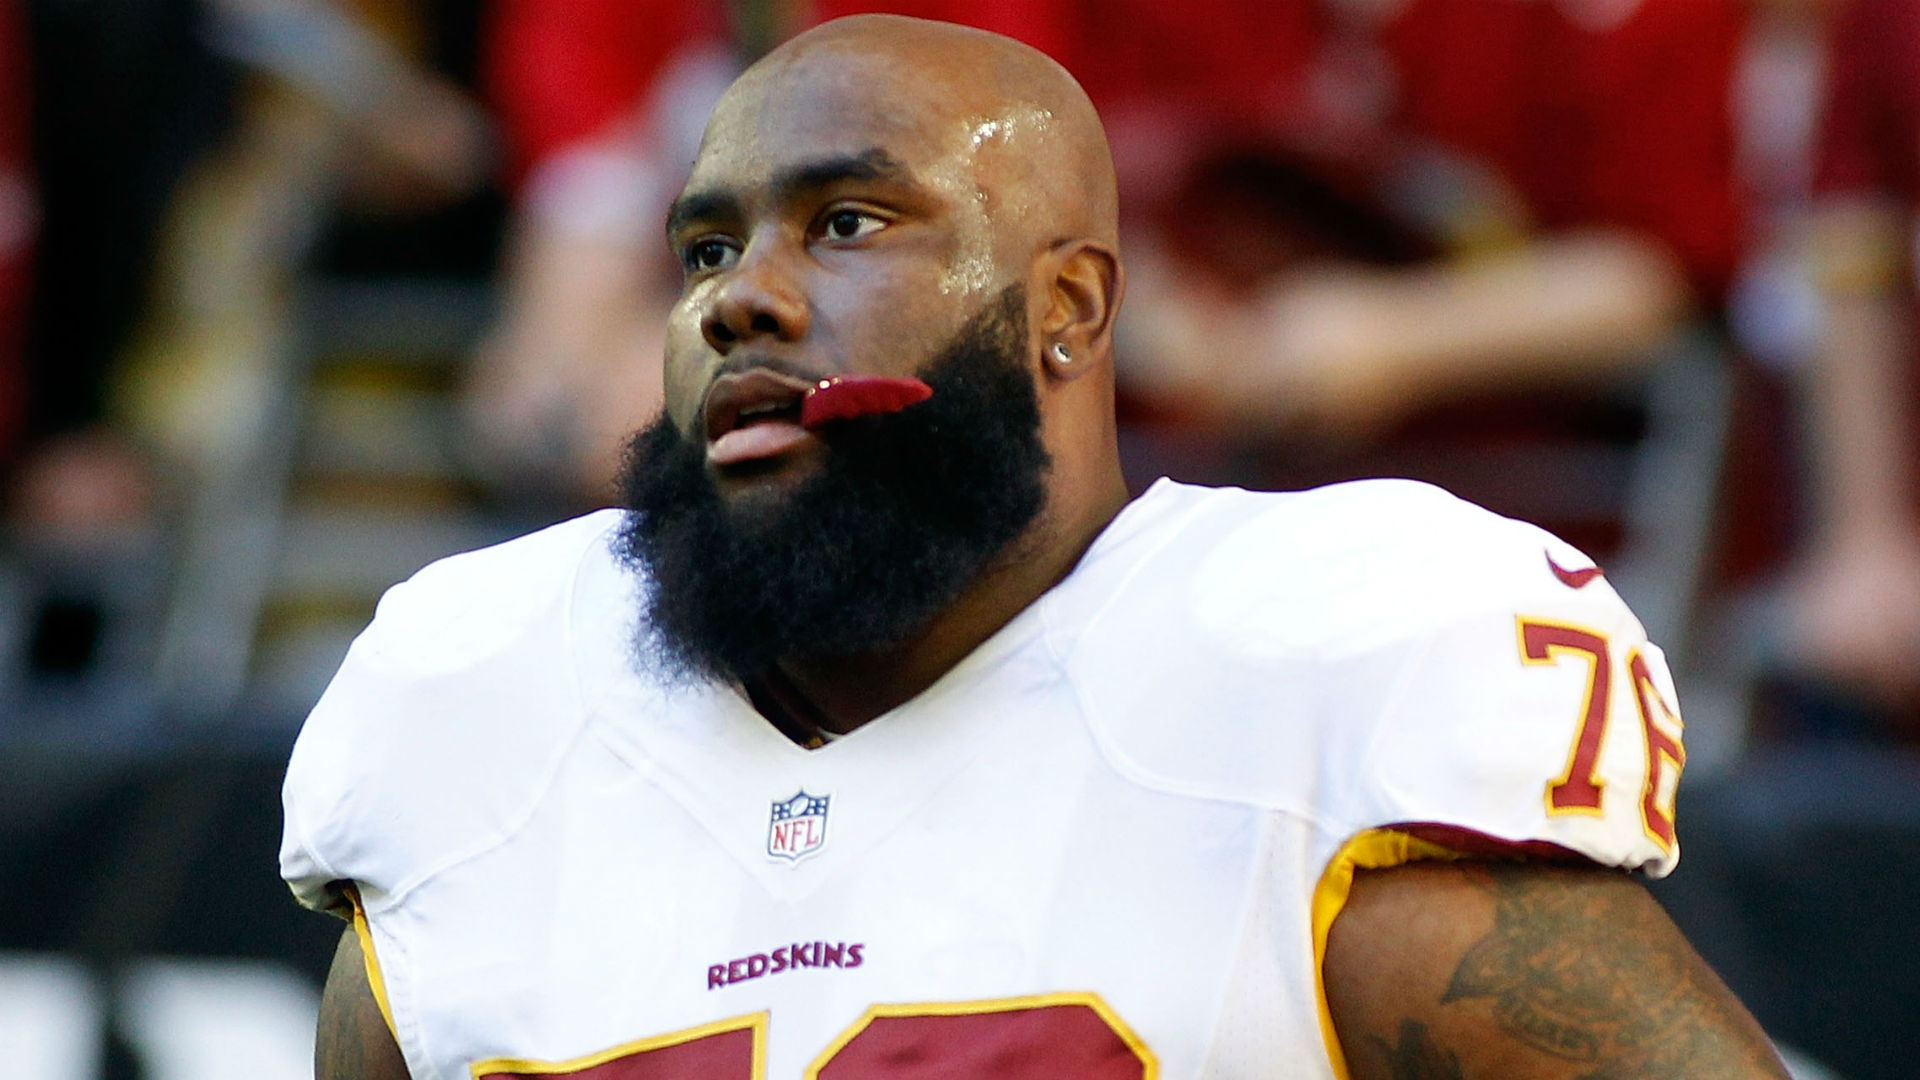 Redskins sign Morgan Moses to 5-year extension